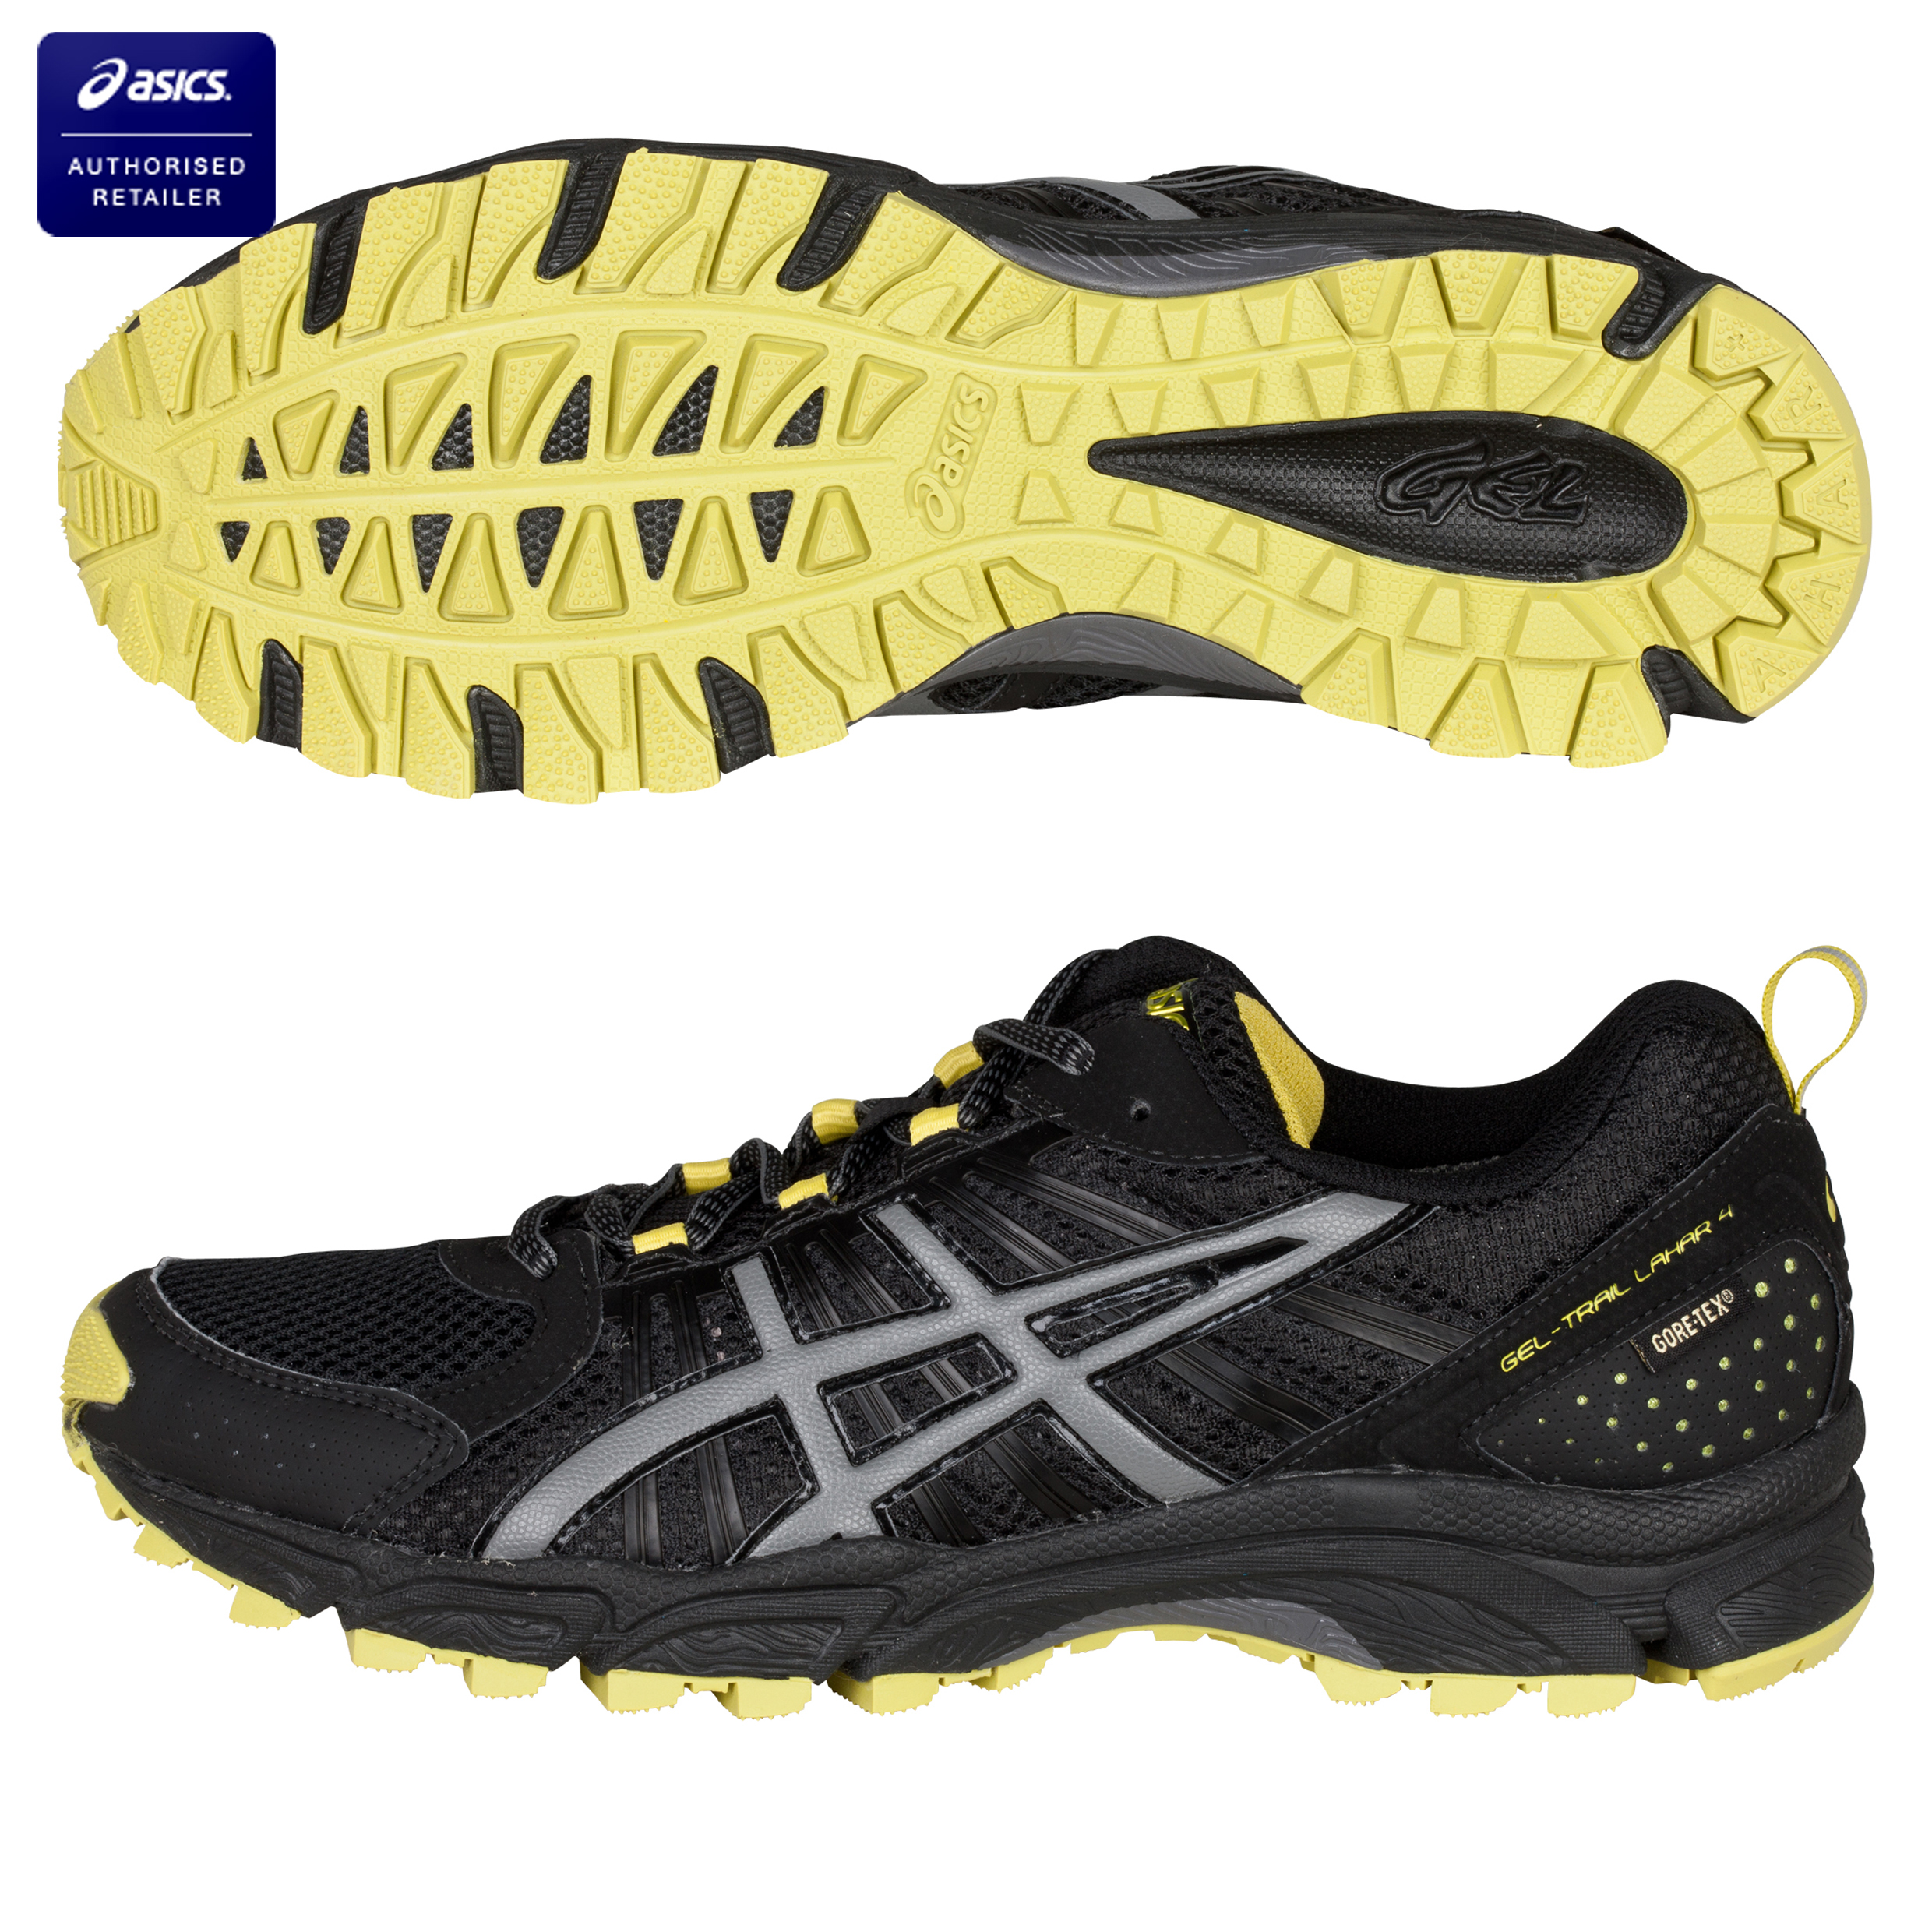 Asics Gel-Trail Lahar 4 G-TX Trainers - Black/Carbon/Sulphur